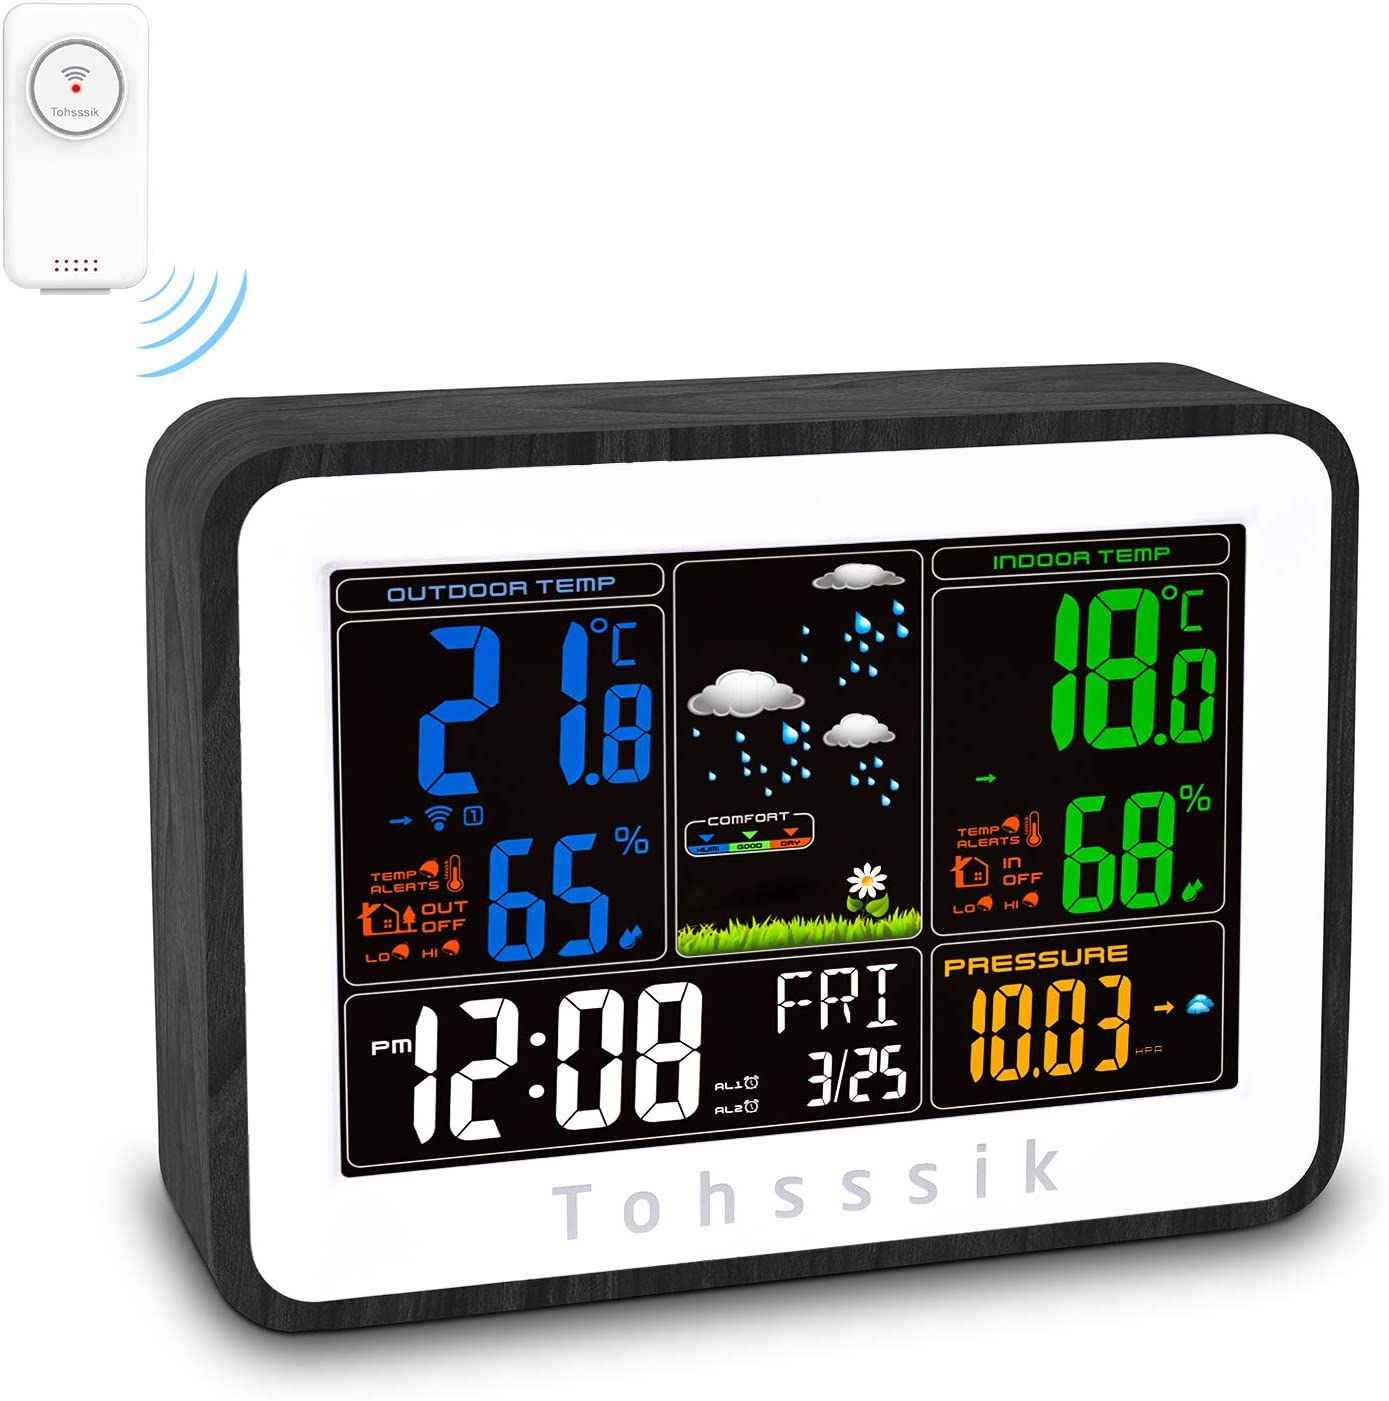 Moon Phrase Air Pressure 8-in-1 Weather Station with Weather Forecast Humidity sainlogic Wireless Weather Station with Outdoor Sensor Wind Gauge Rain Gauge Temperature NO WiFi